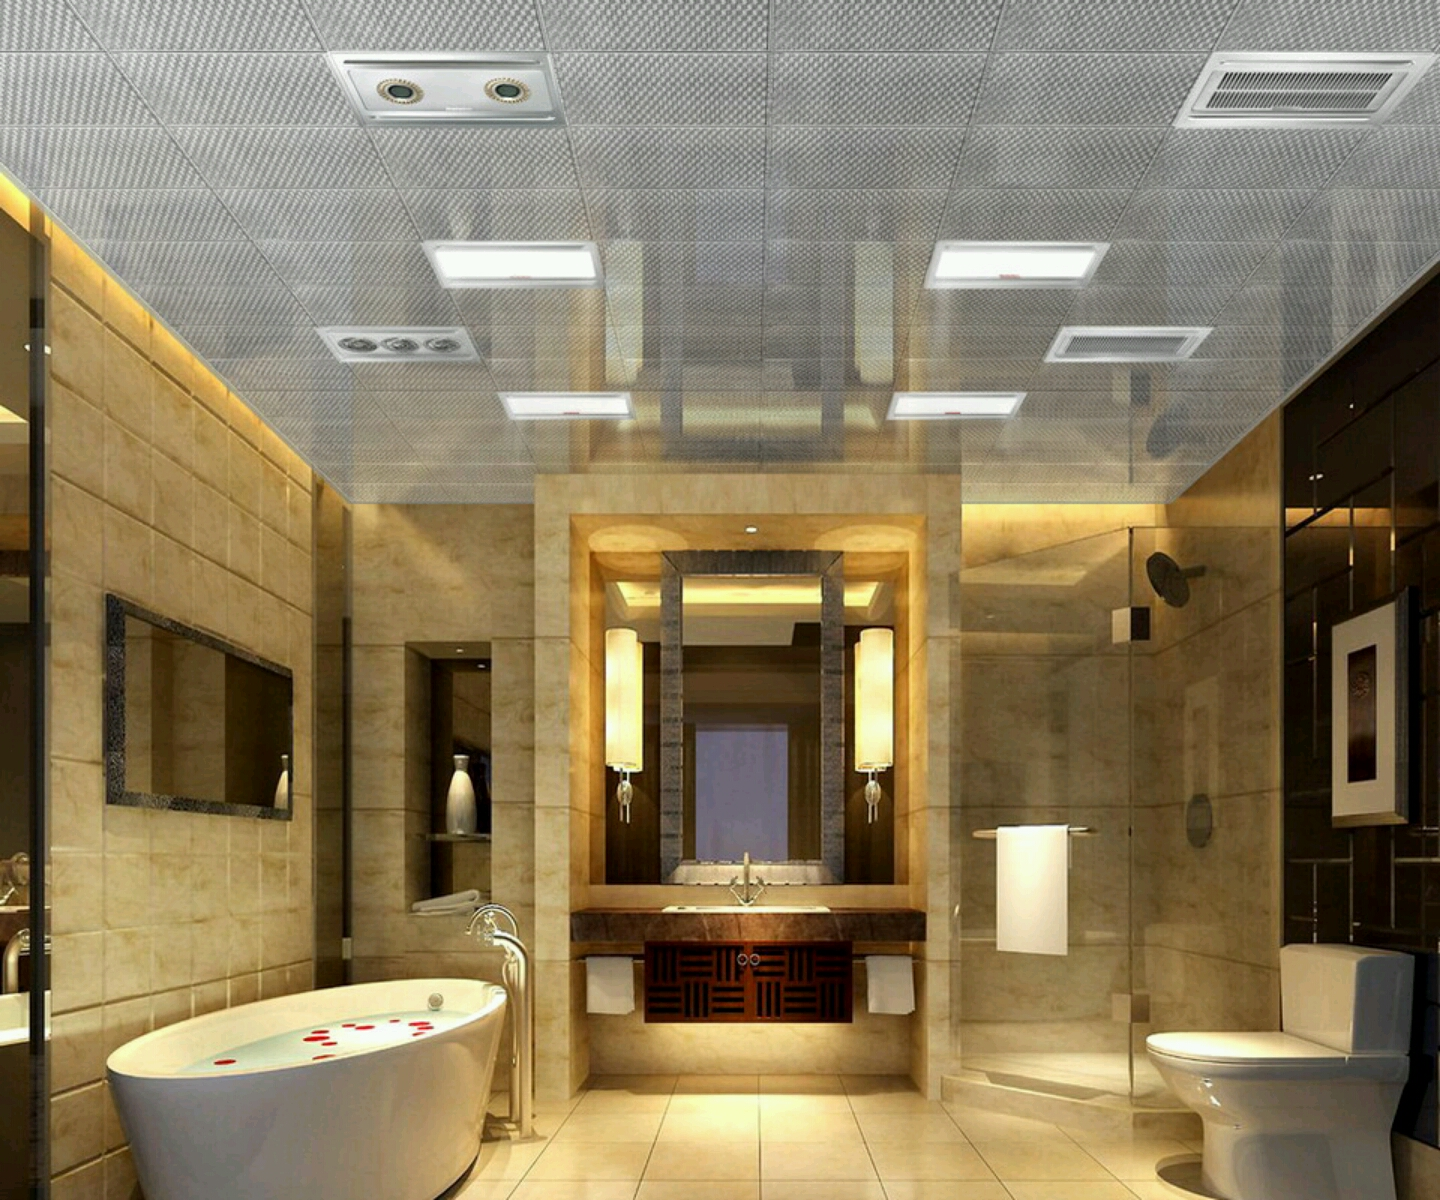 New home designs latest luxury bathrooms designs ideas for Ideas for bathroom designs